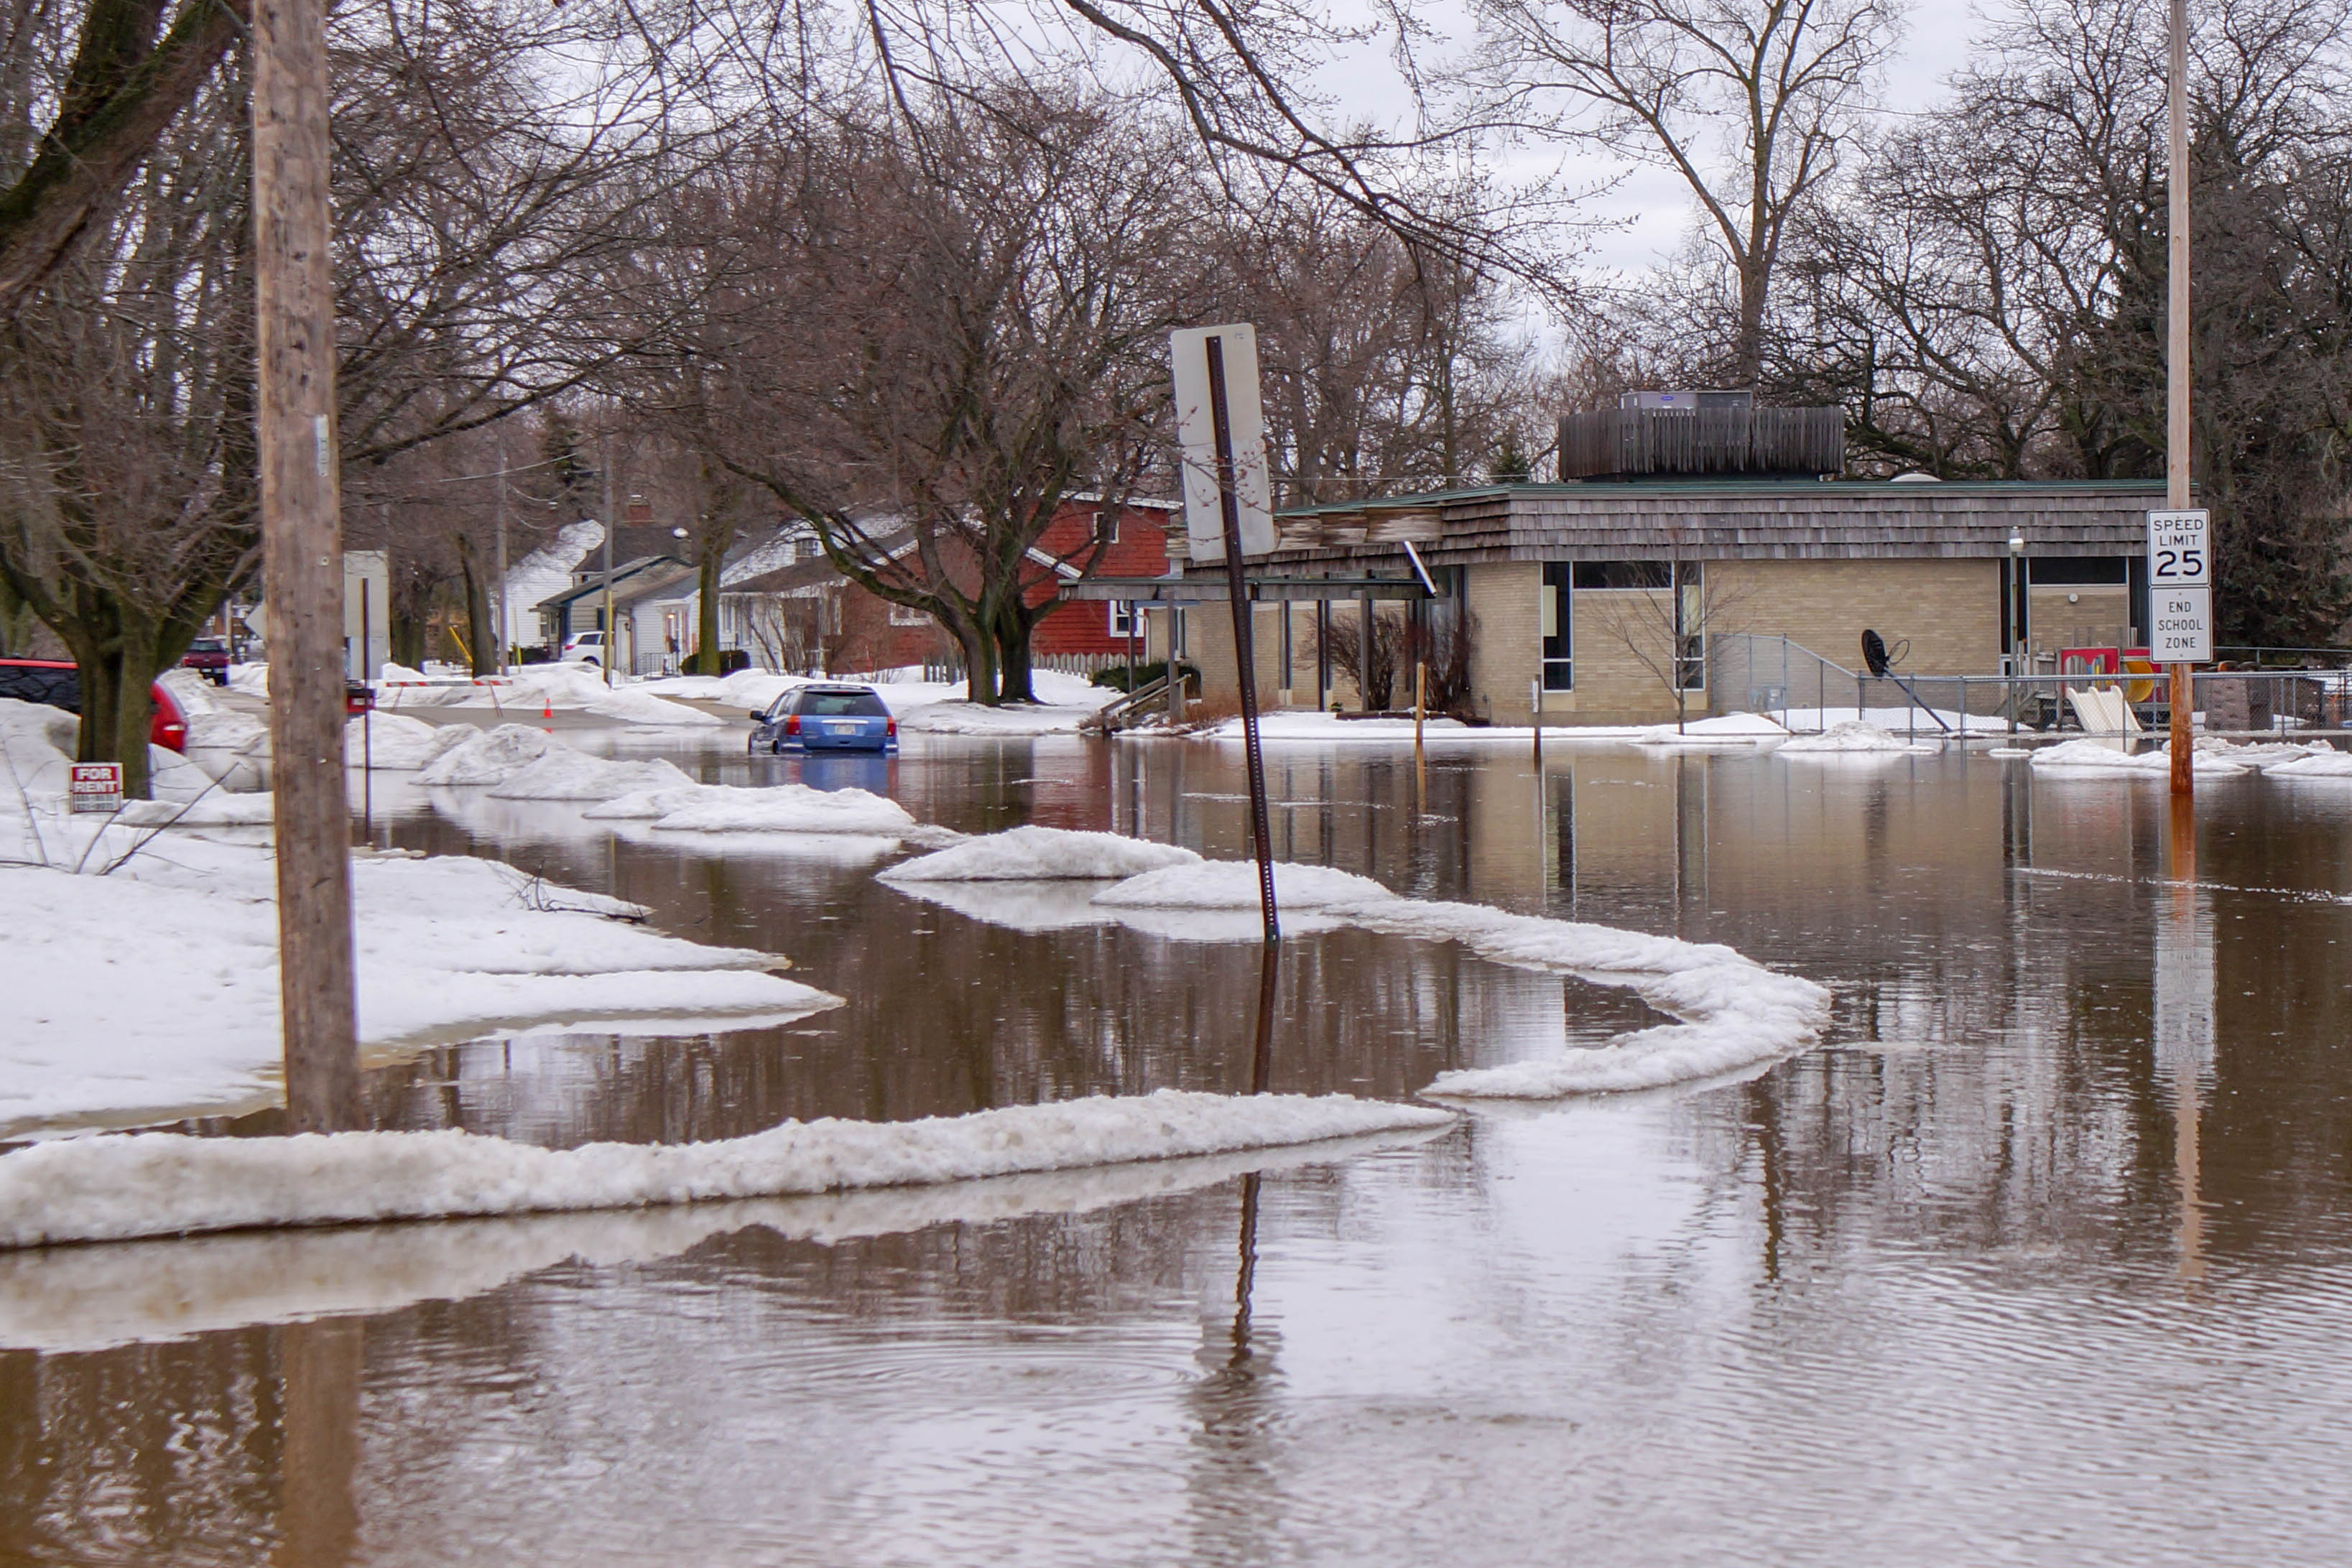 East River Flood in Green Bay